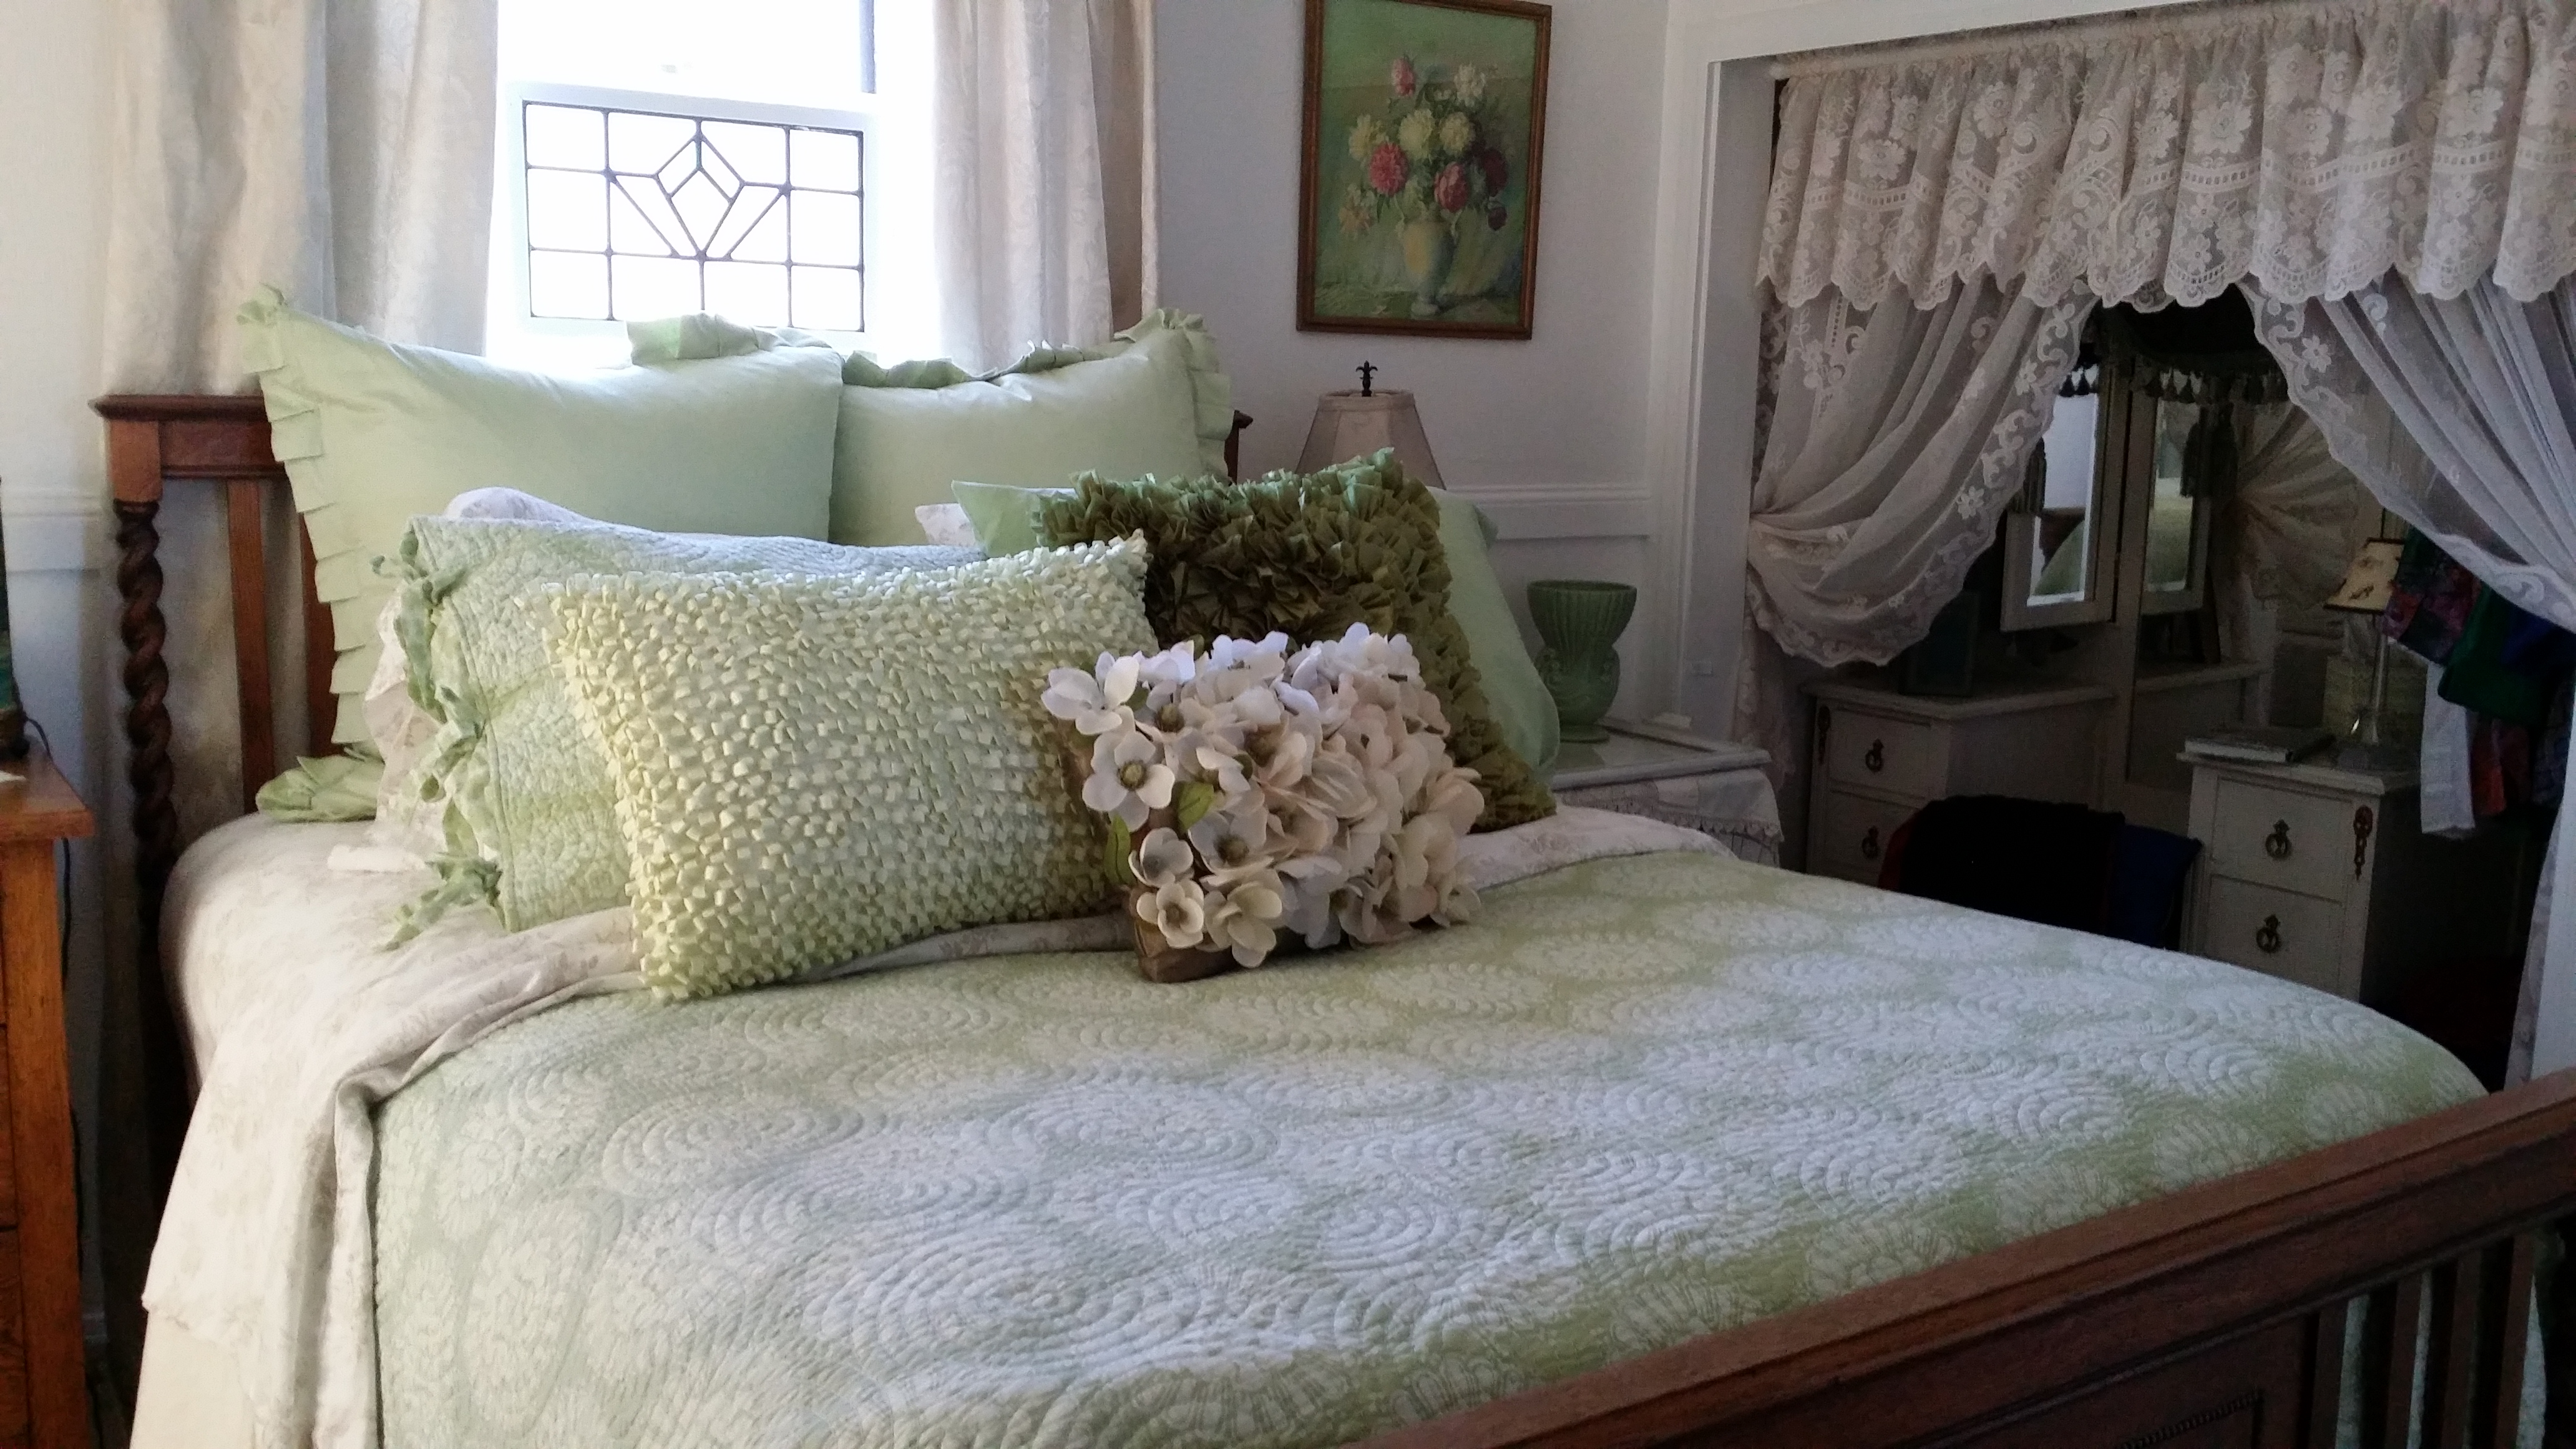 A perfect night's sleep awaits you at The Painted Lady